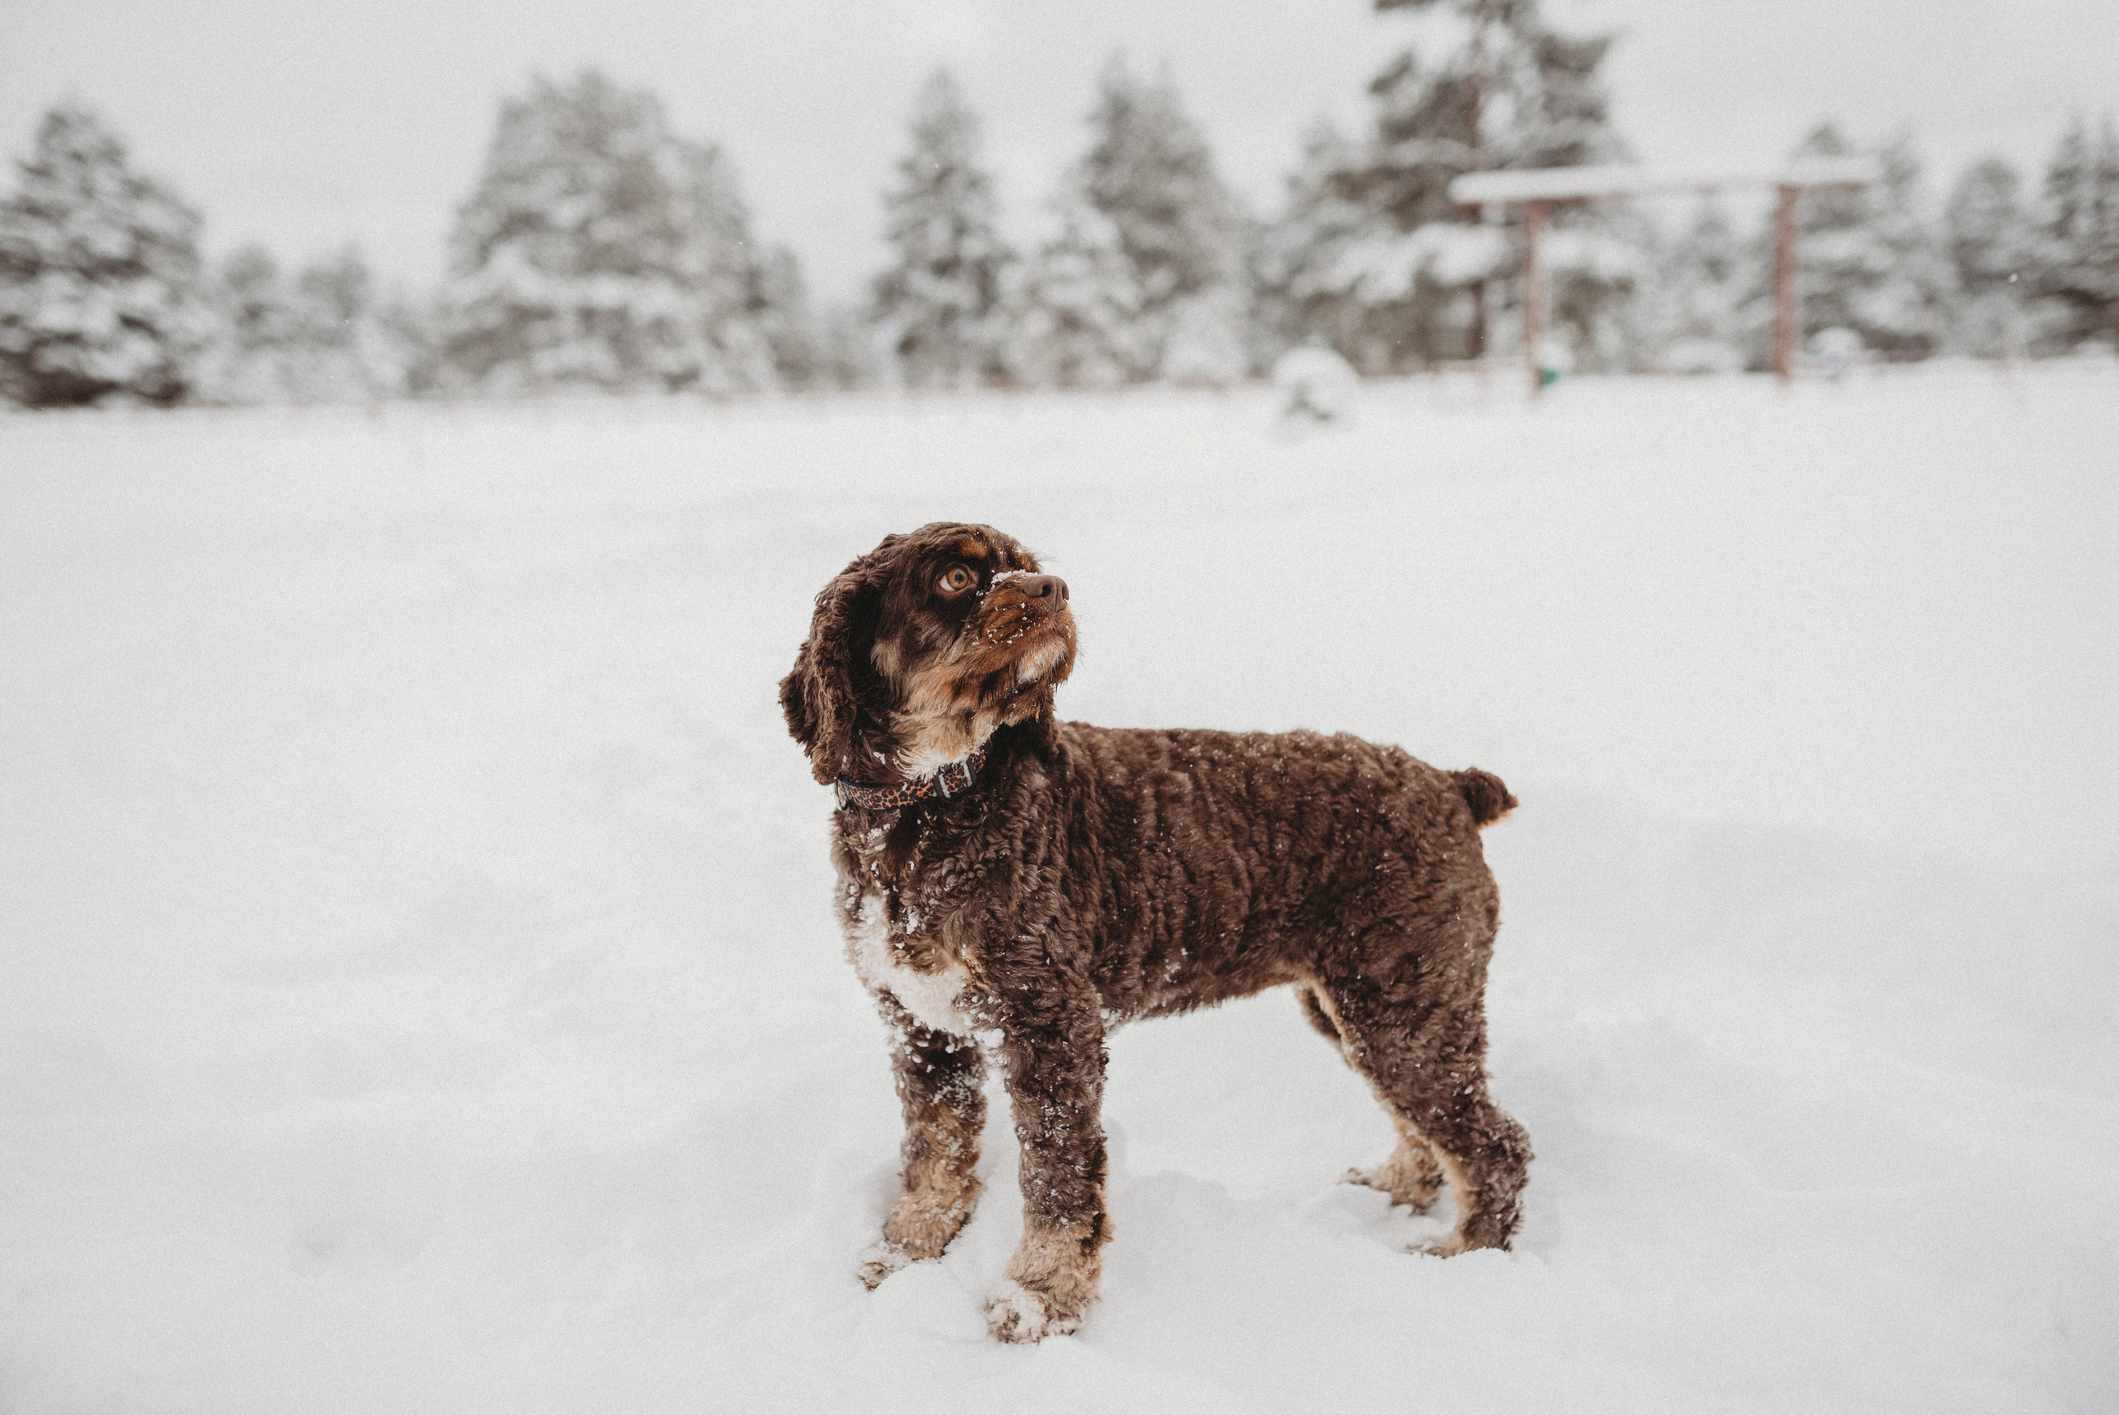 A black, curly-haired dog in the snow.